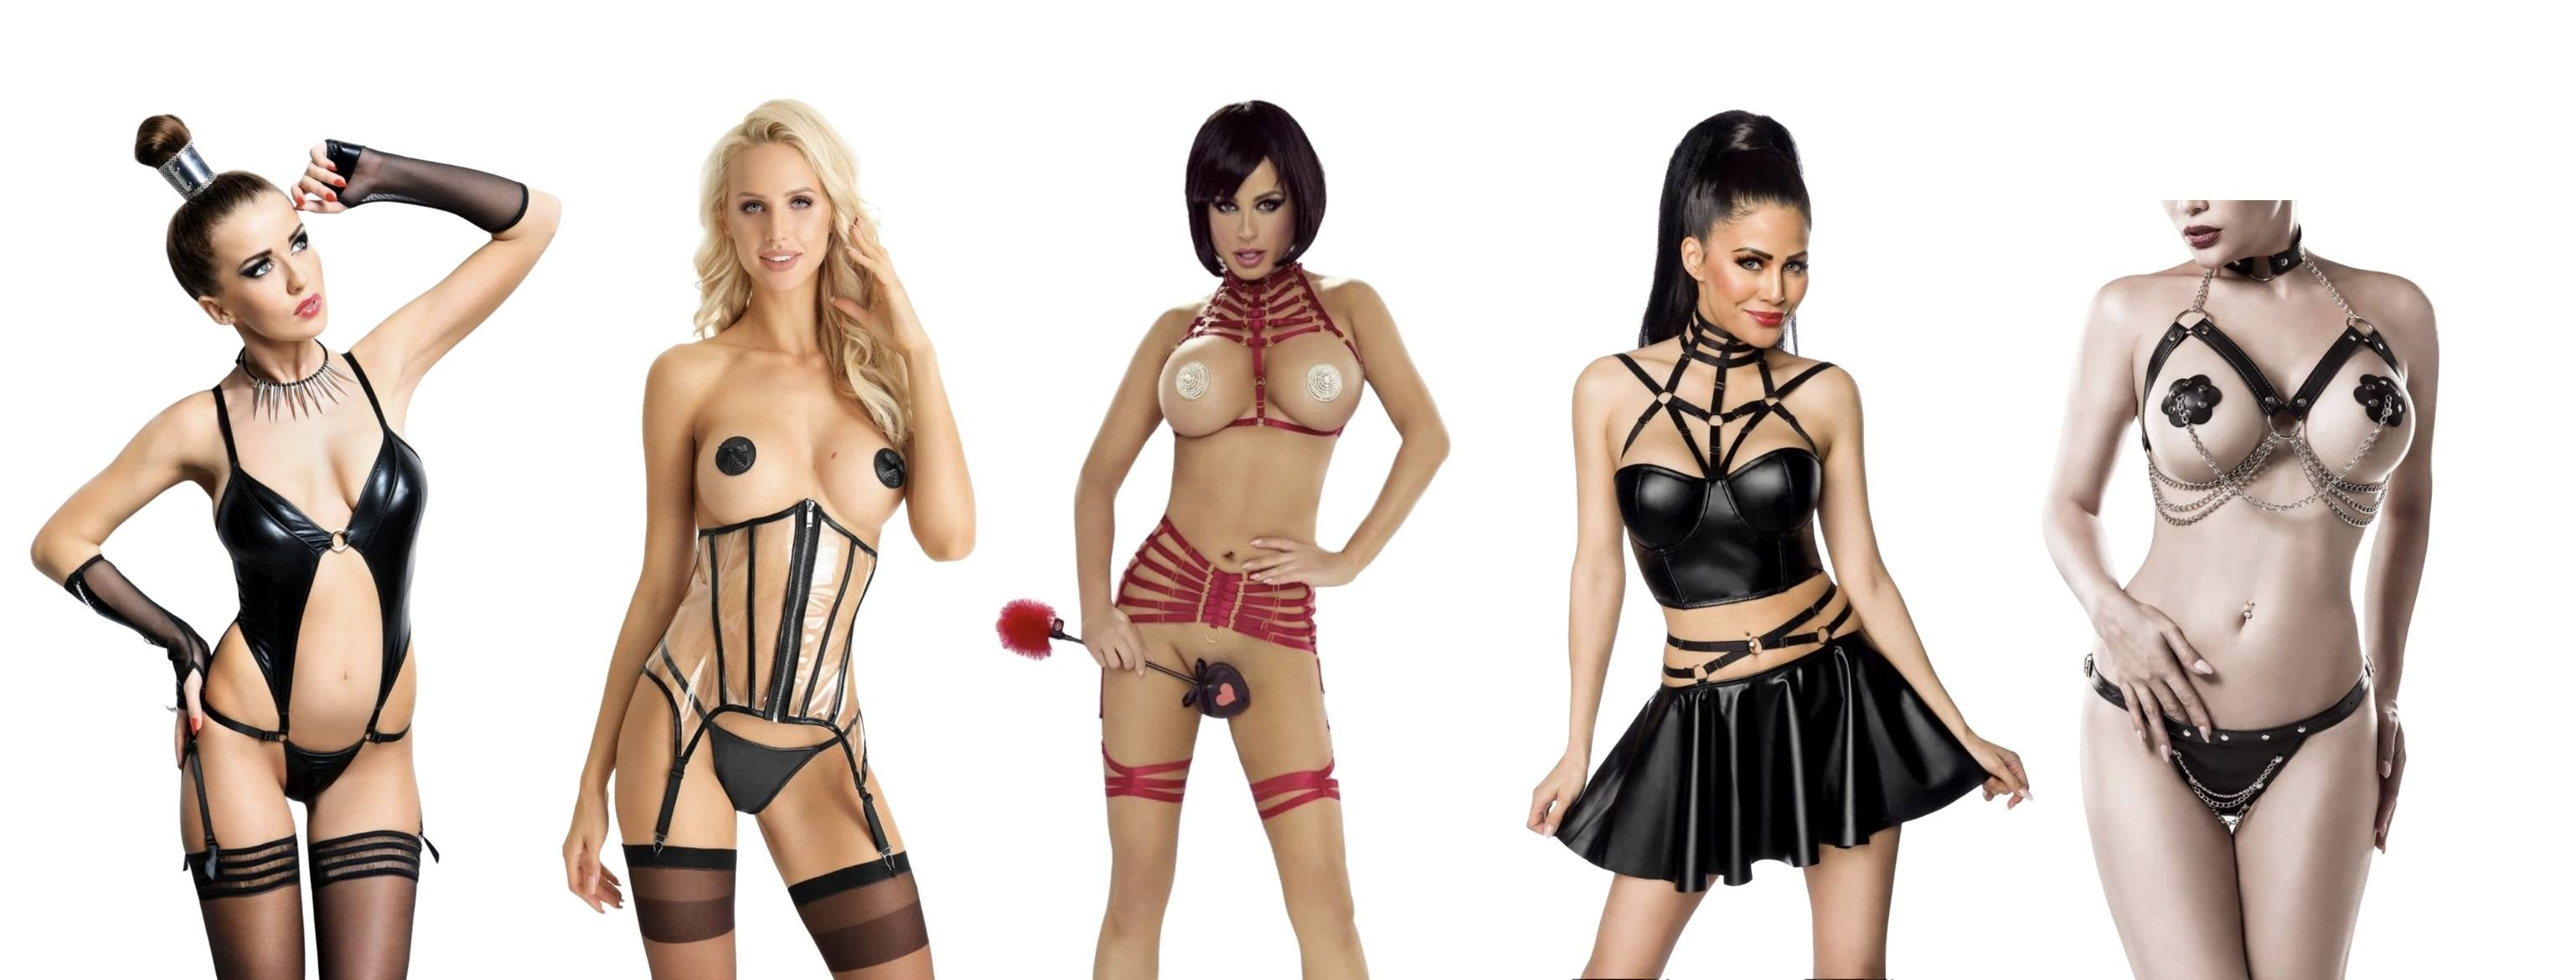 Domina Outfits